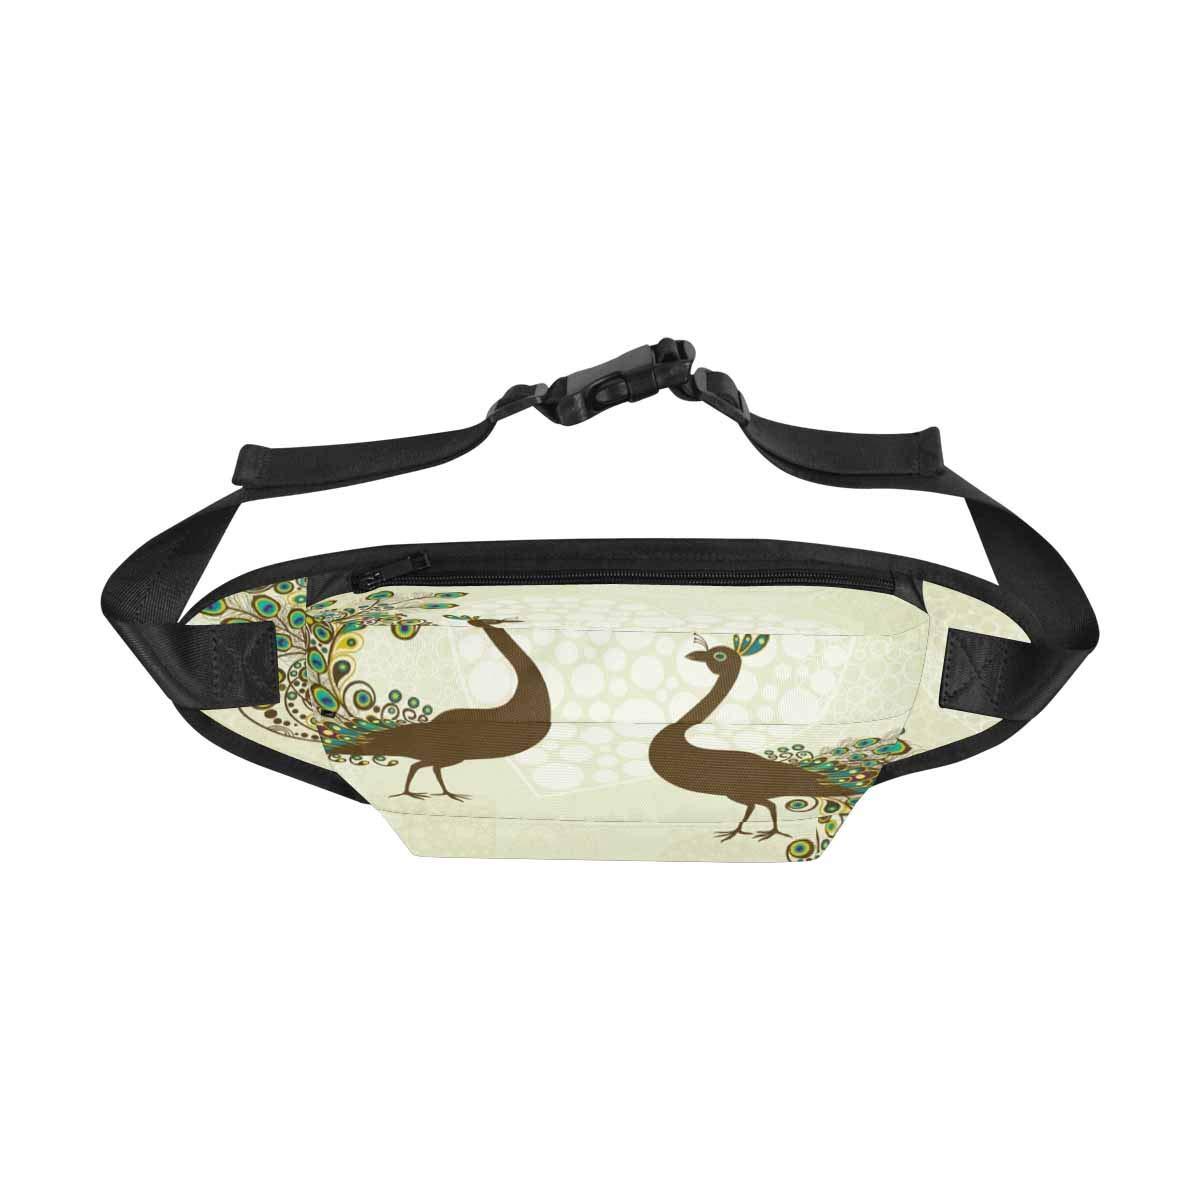 Colorful Peacock Sport Waist Pack Fanny Pack Adjustable For Travel